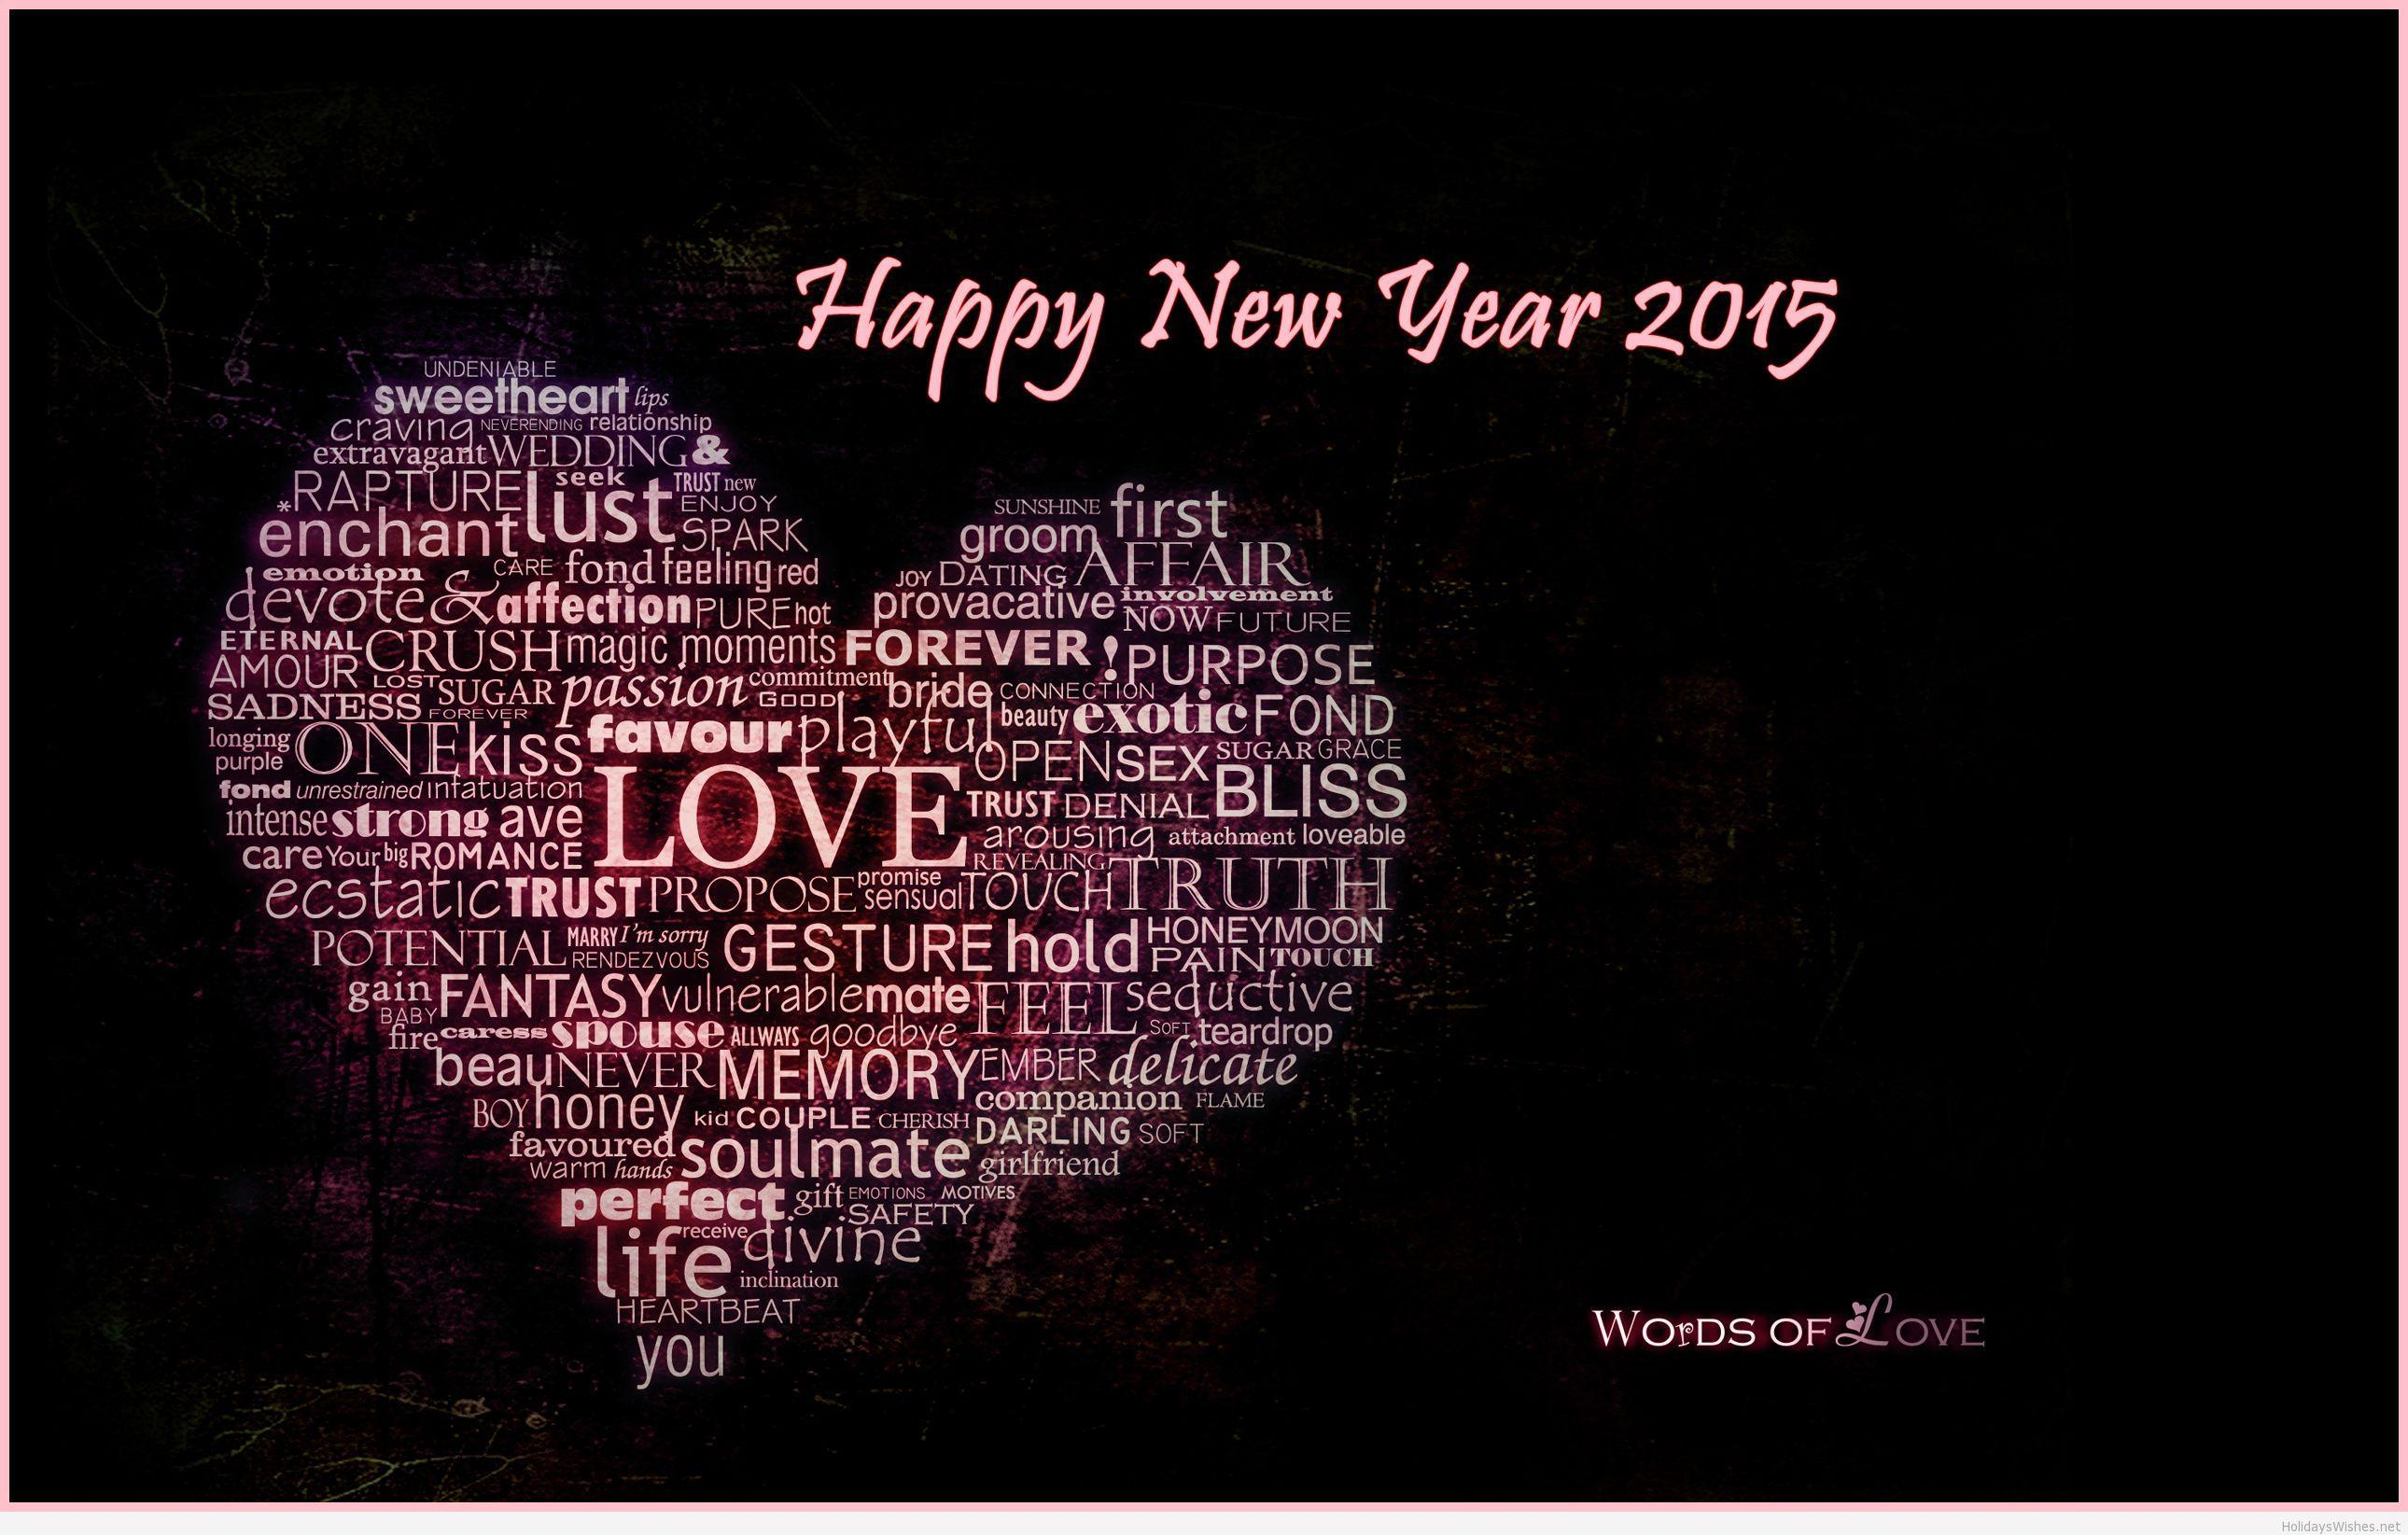 Love Happy New Year 2015 Wallpapers Wallpapers computer